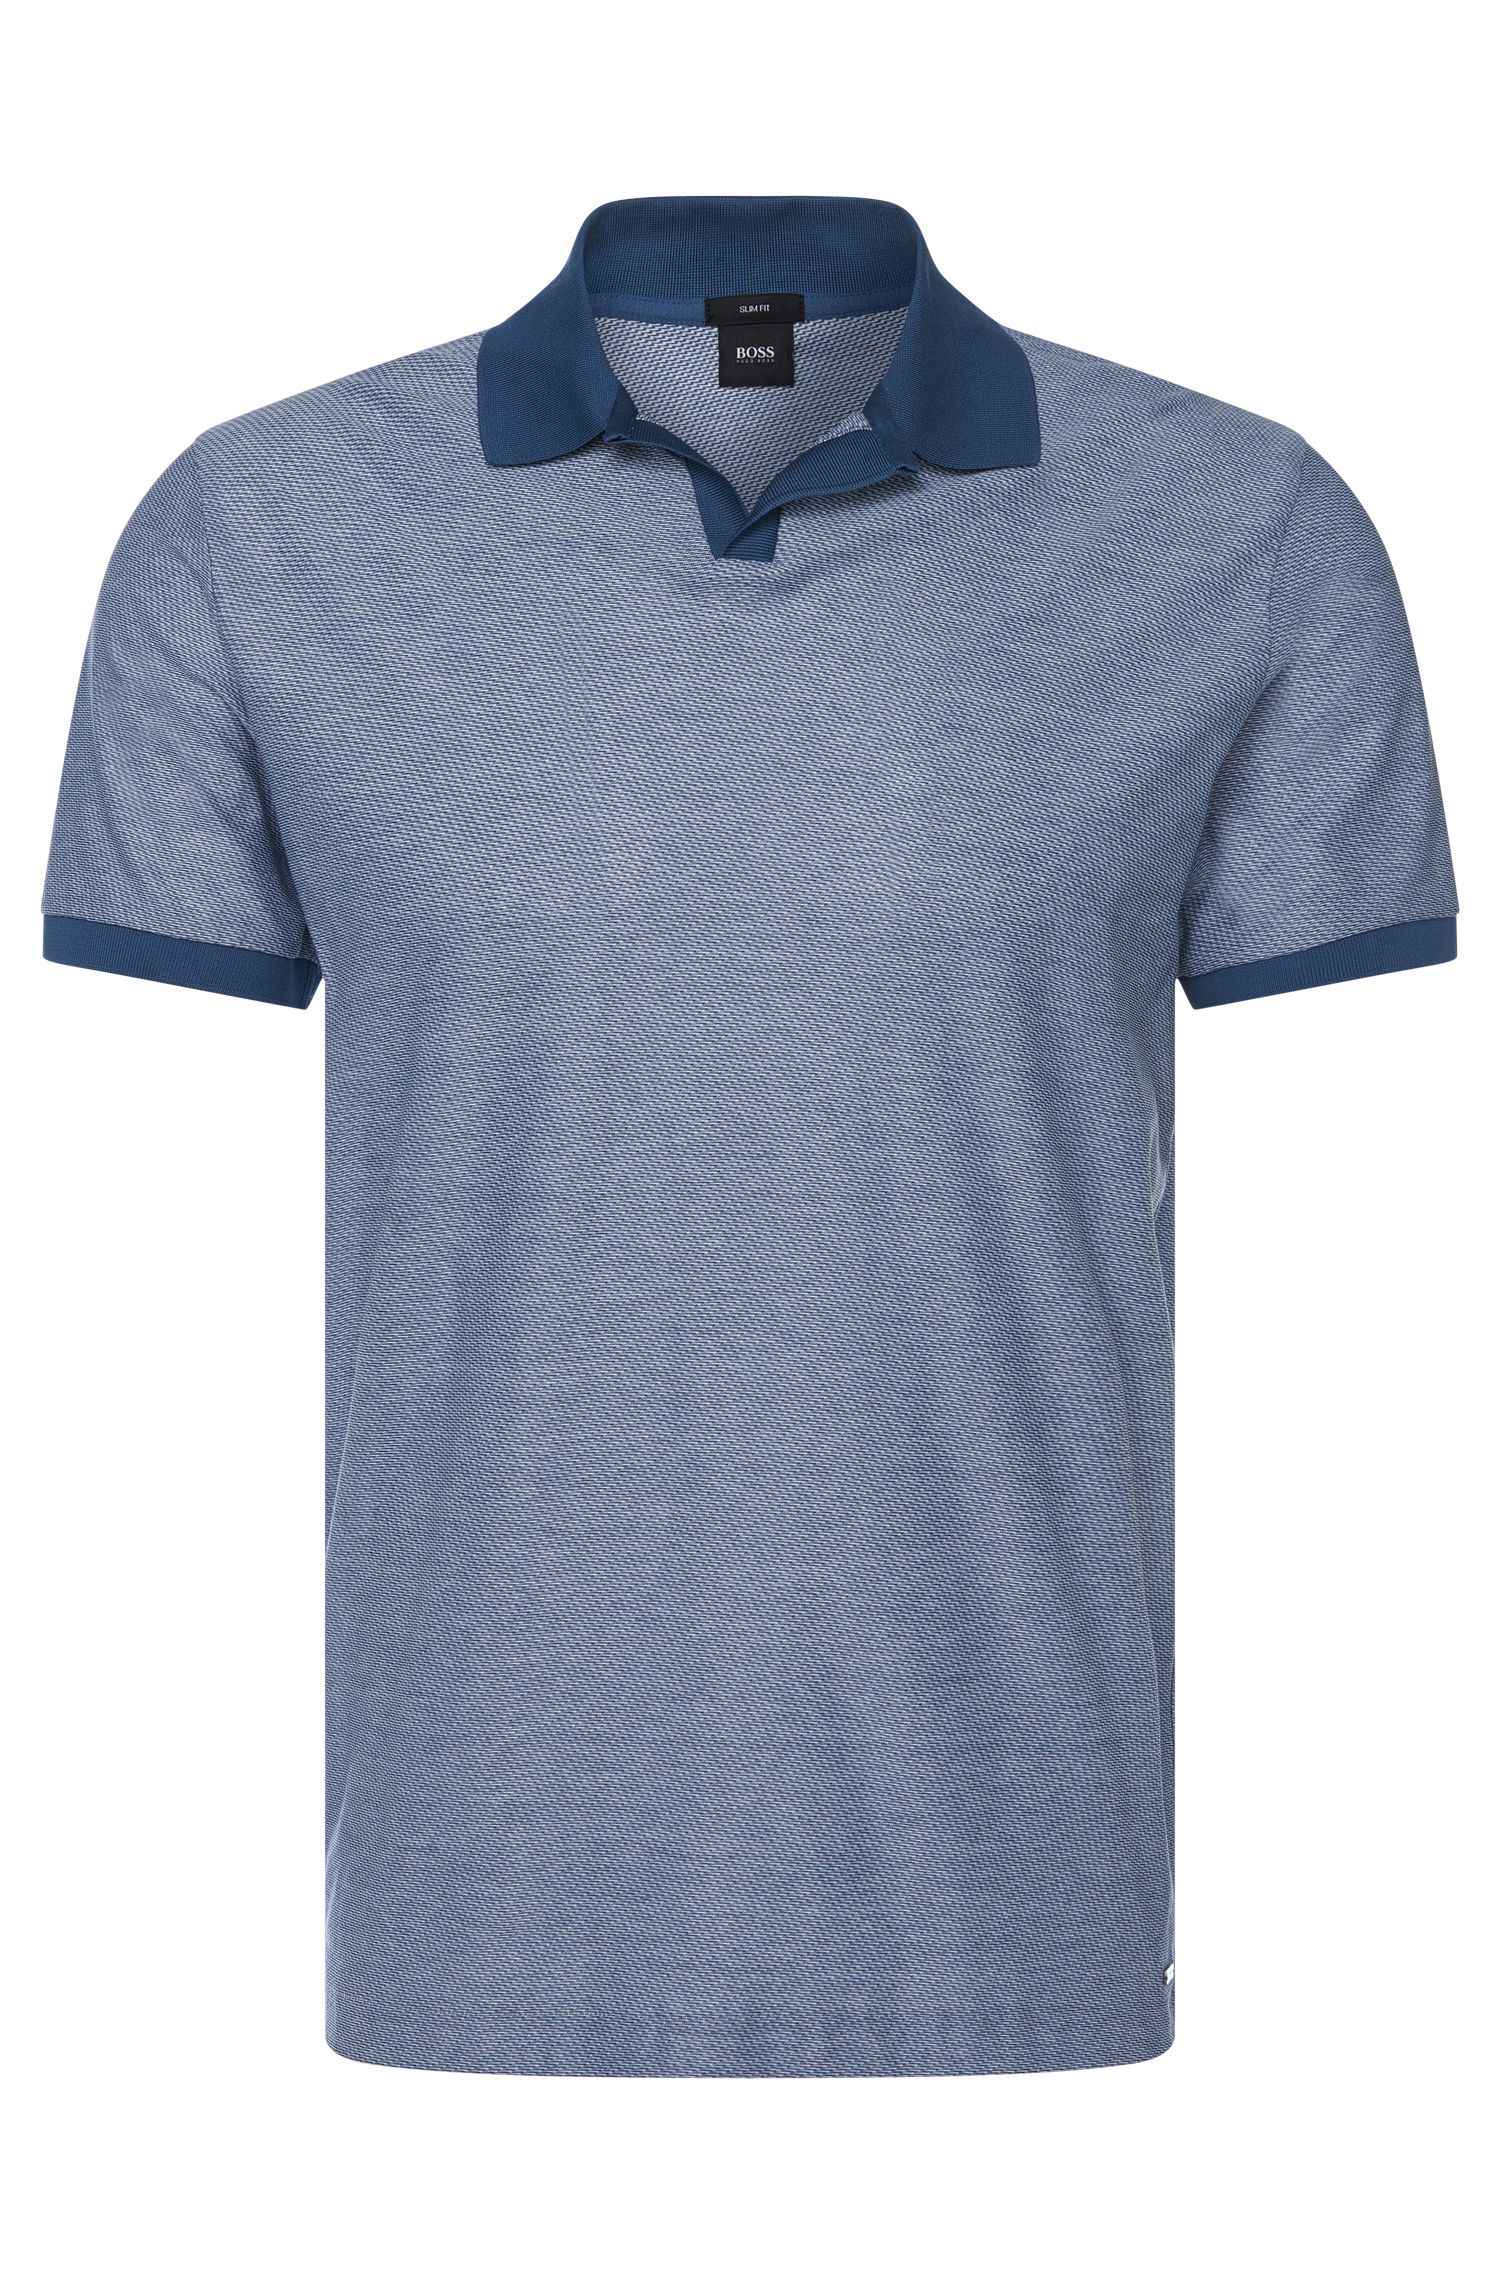 Cotton Patterned Polo Shirt, Slim Fit | Phillipson , Open Blue